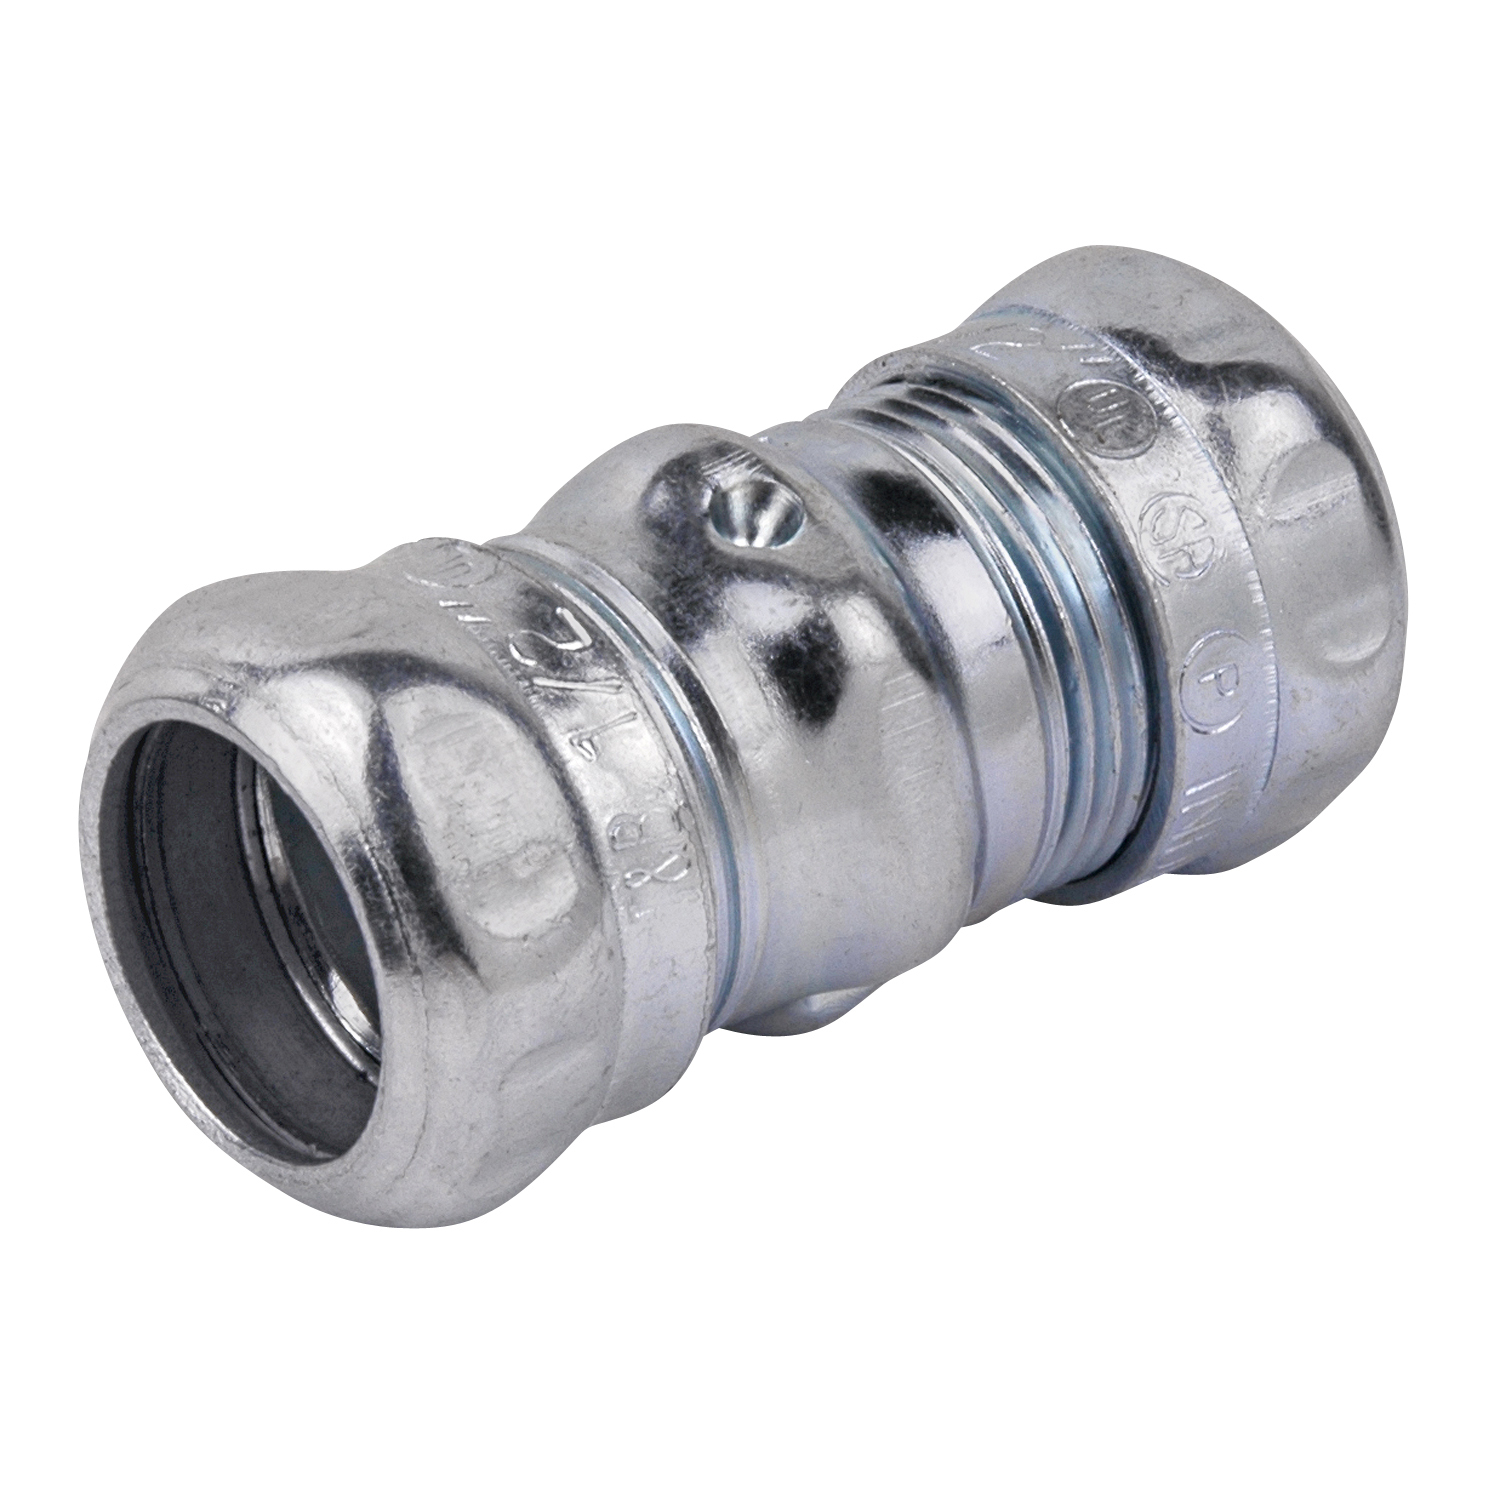 STCTK111A 1/2 INCH COMPRESSION COUPLING, STEEL-ZINC PLATED, CONCRETE TIGHT. FOR USE WITH EMT CONDUIT., STEEL CITY